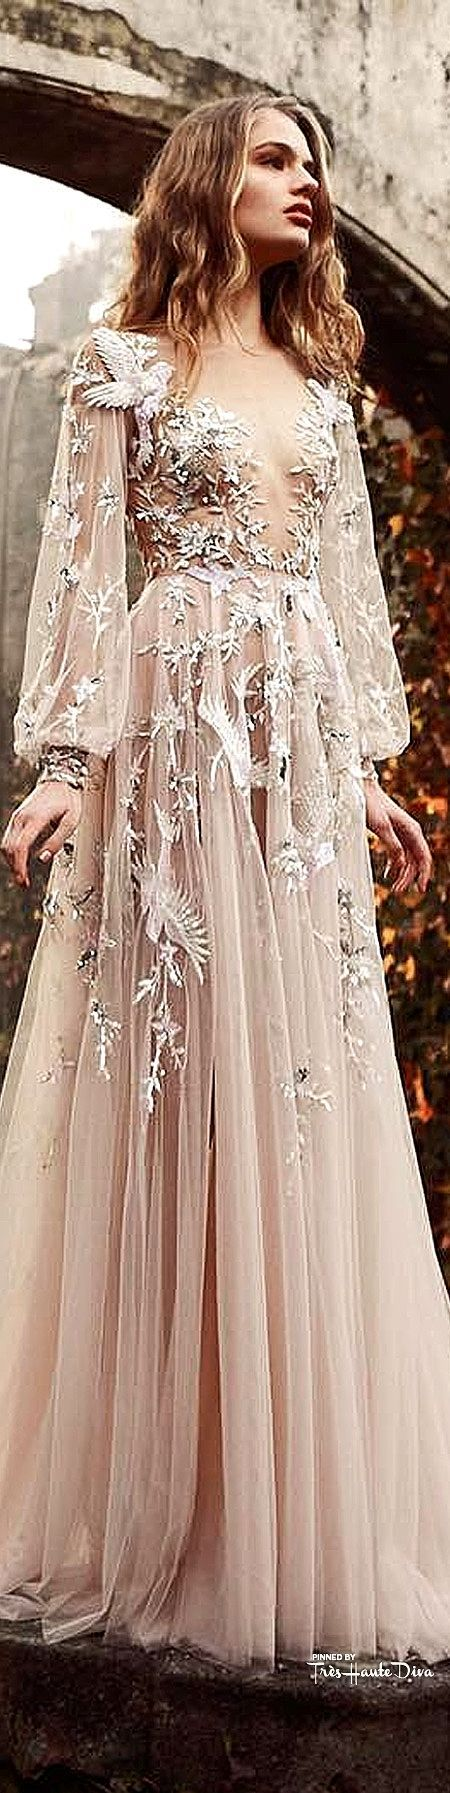 sightly  wedding dresses designer ellie saab monique lhuillier 2016